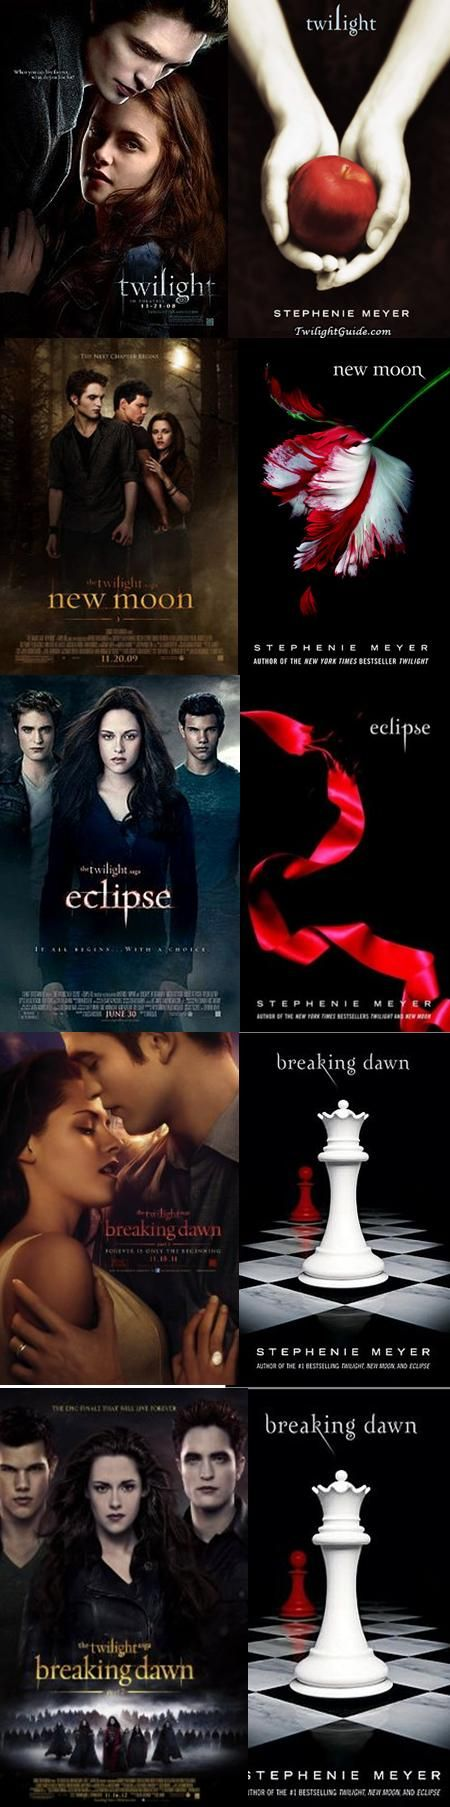 The Twilight Saga, Movies & Books, having both is super cool